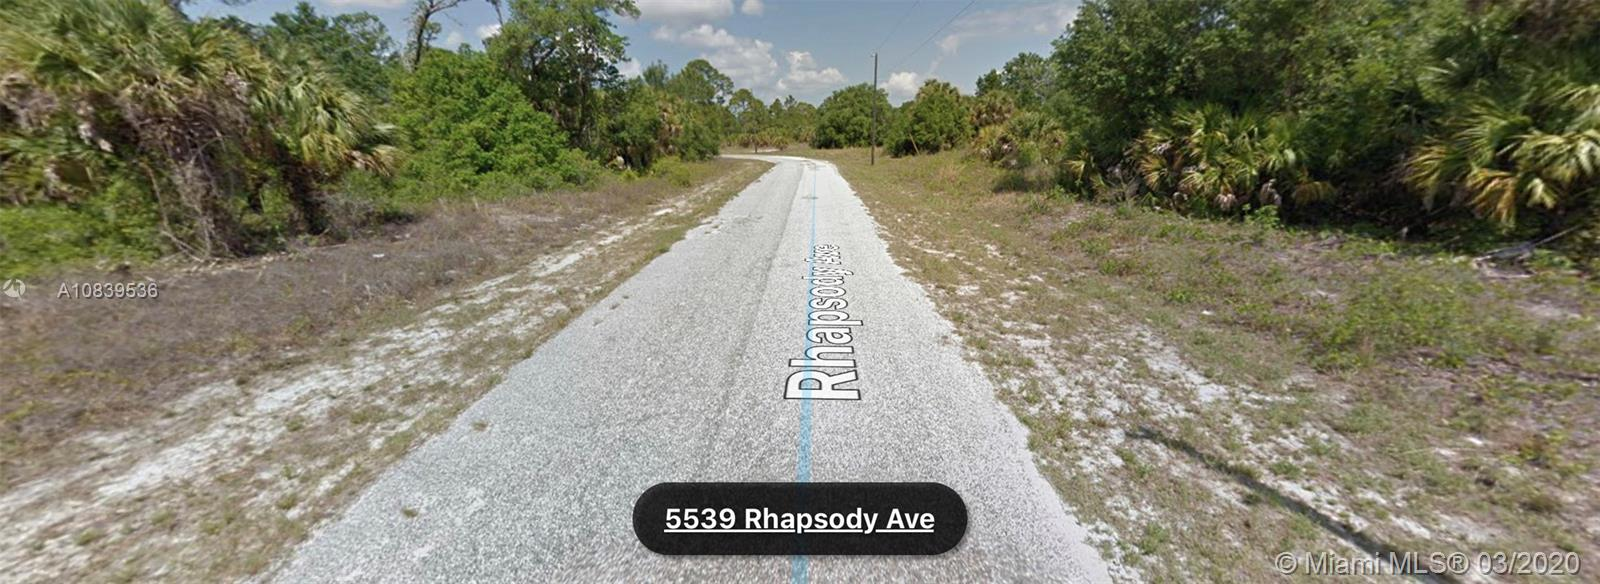 RHAPSODY AVE NORTH PORT, Other City - In The State Of Florida, FL 34288